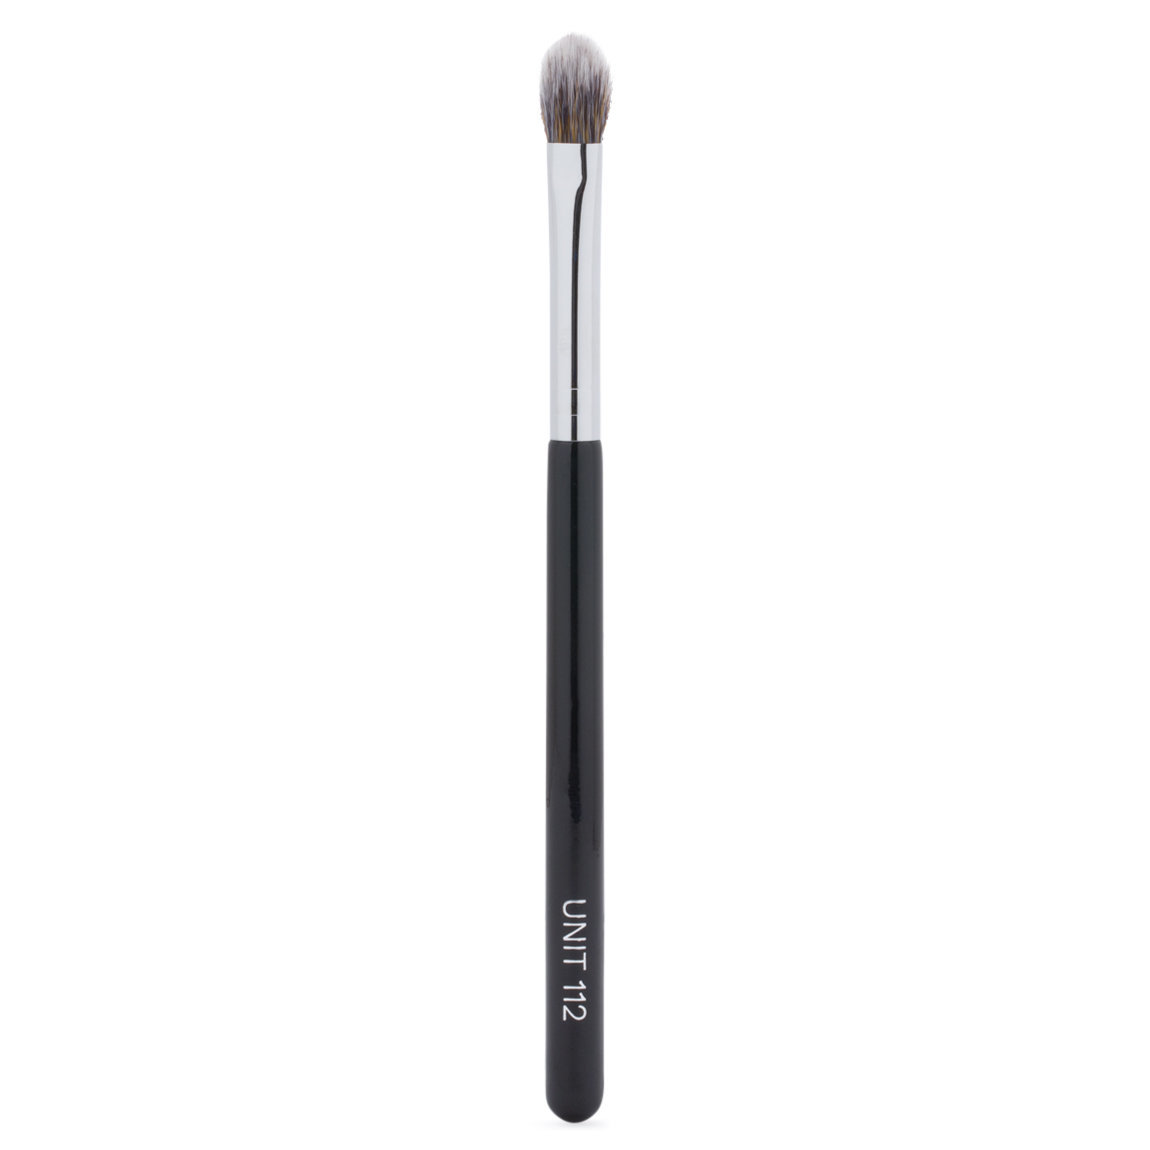 UNITS UNIT 112 Eye Brush product smear.